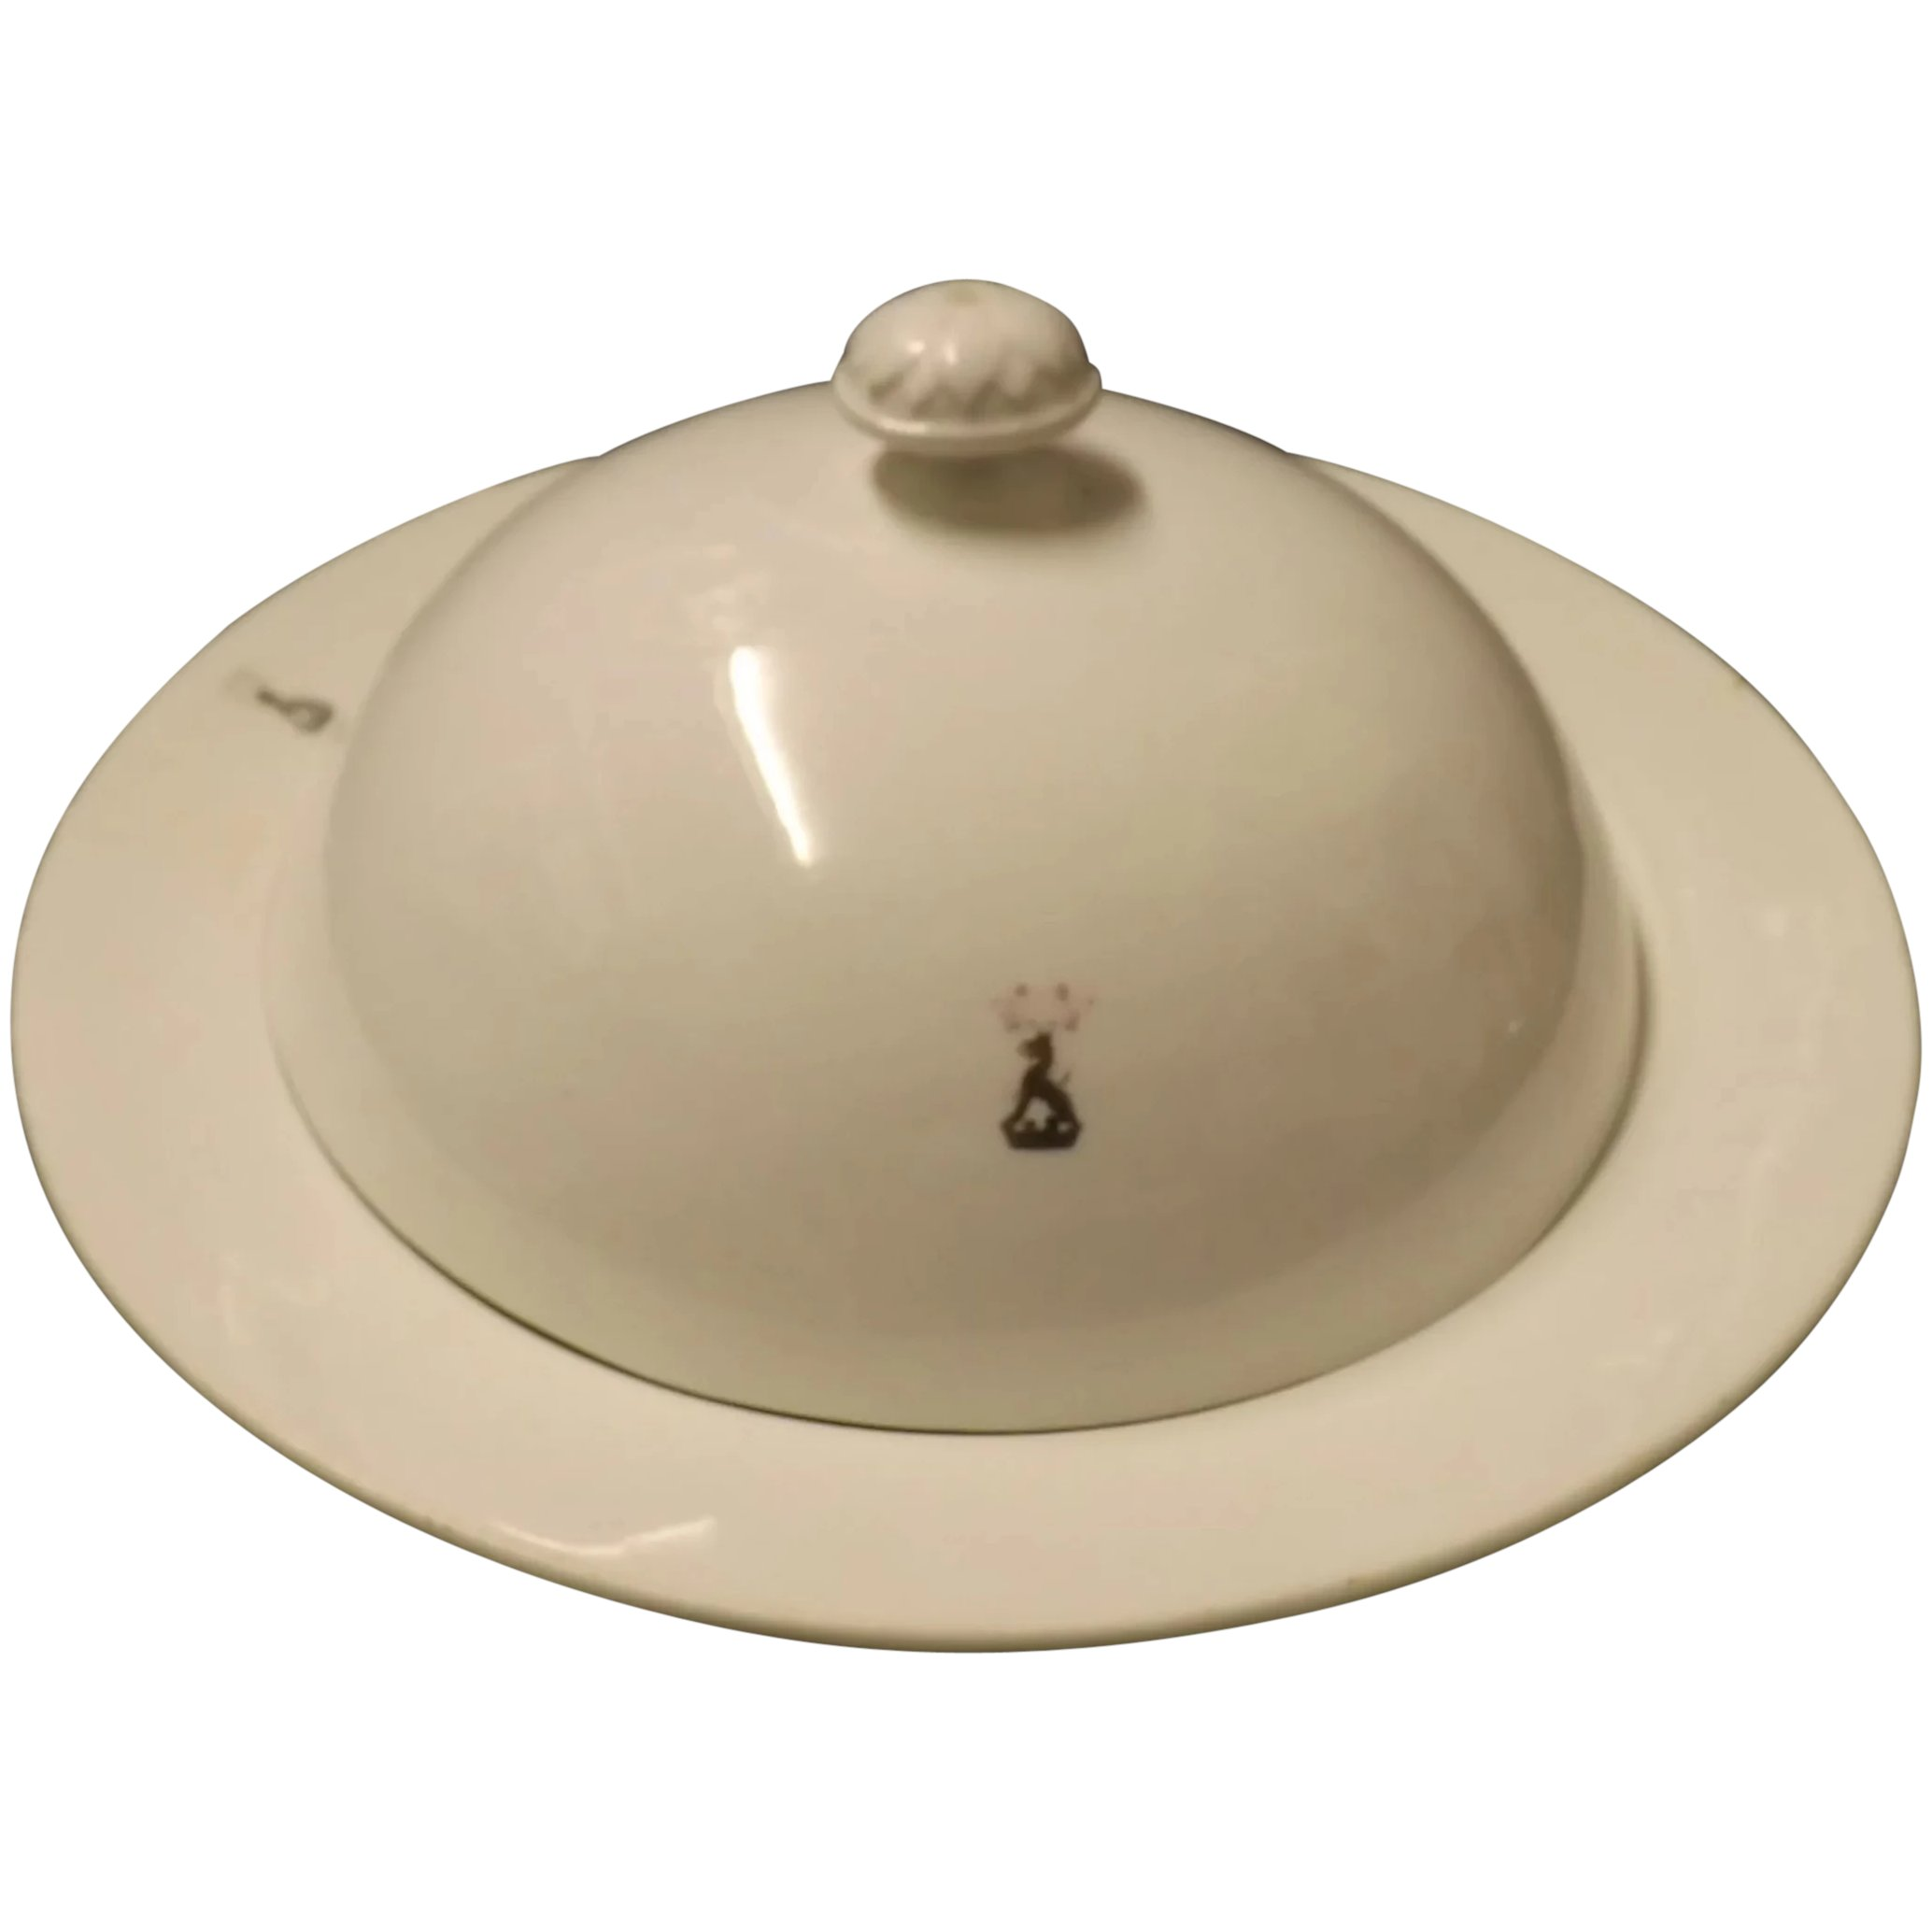 SEVRES Lidded Serving Dish or Tureen With Amorial - 1766